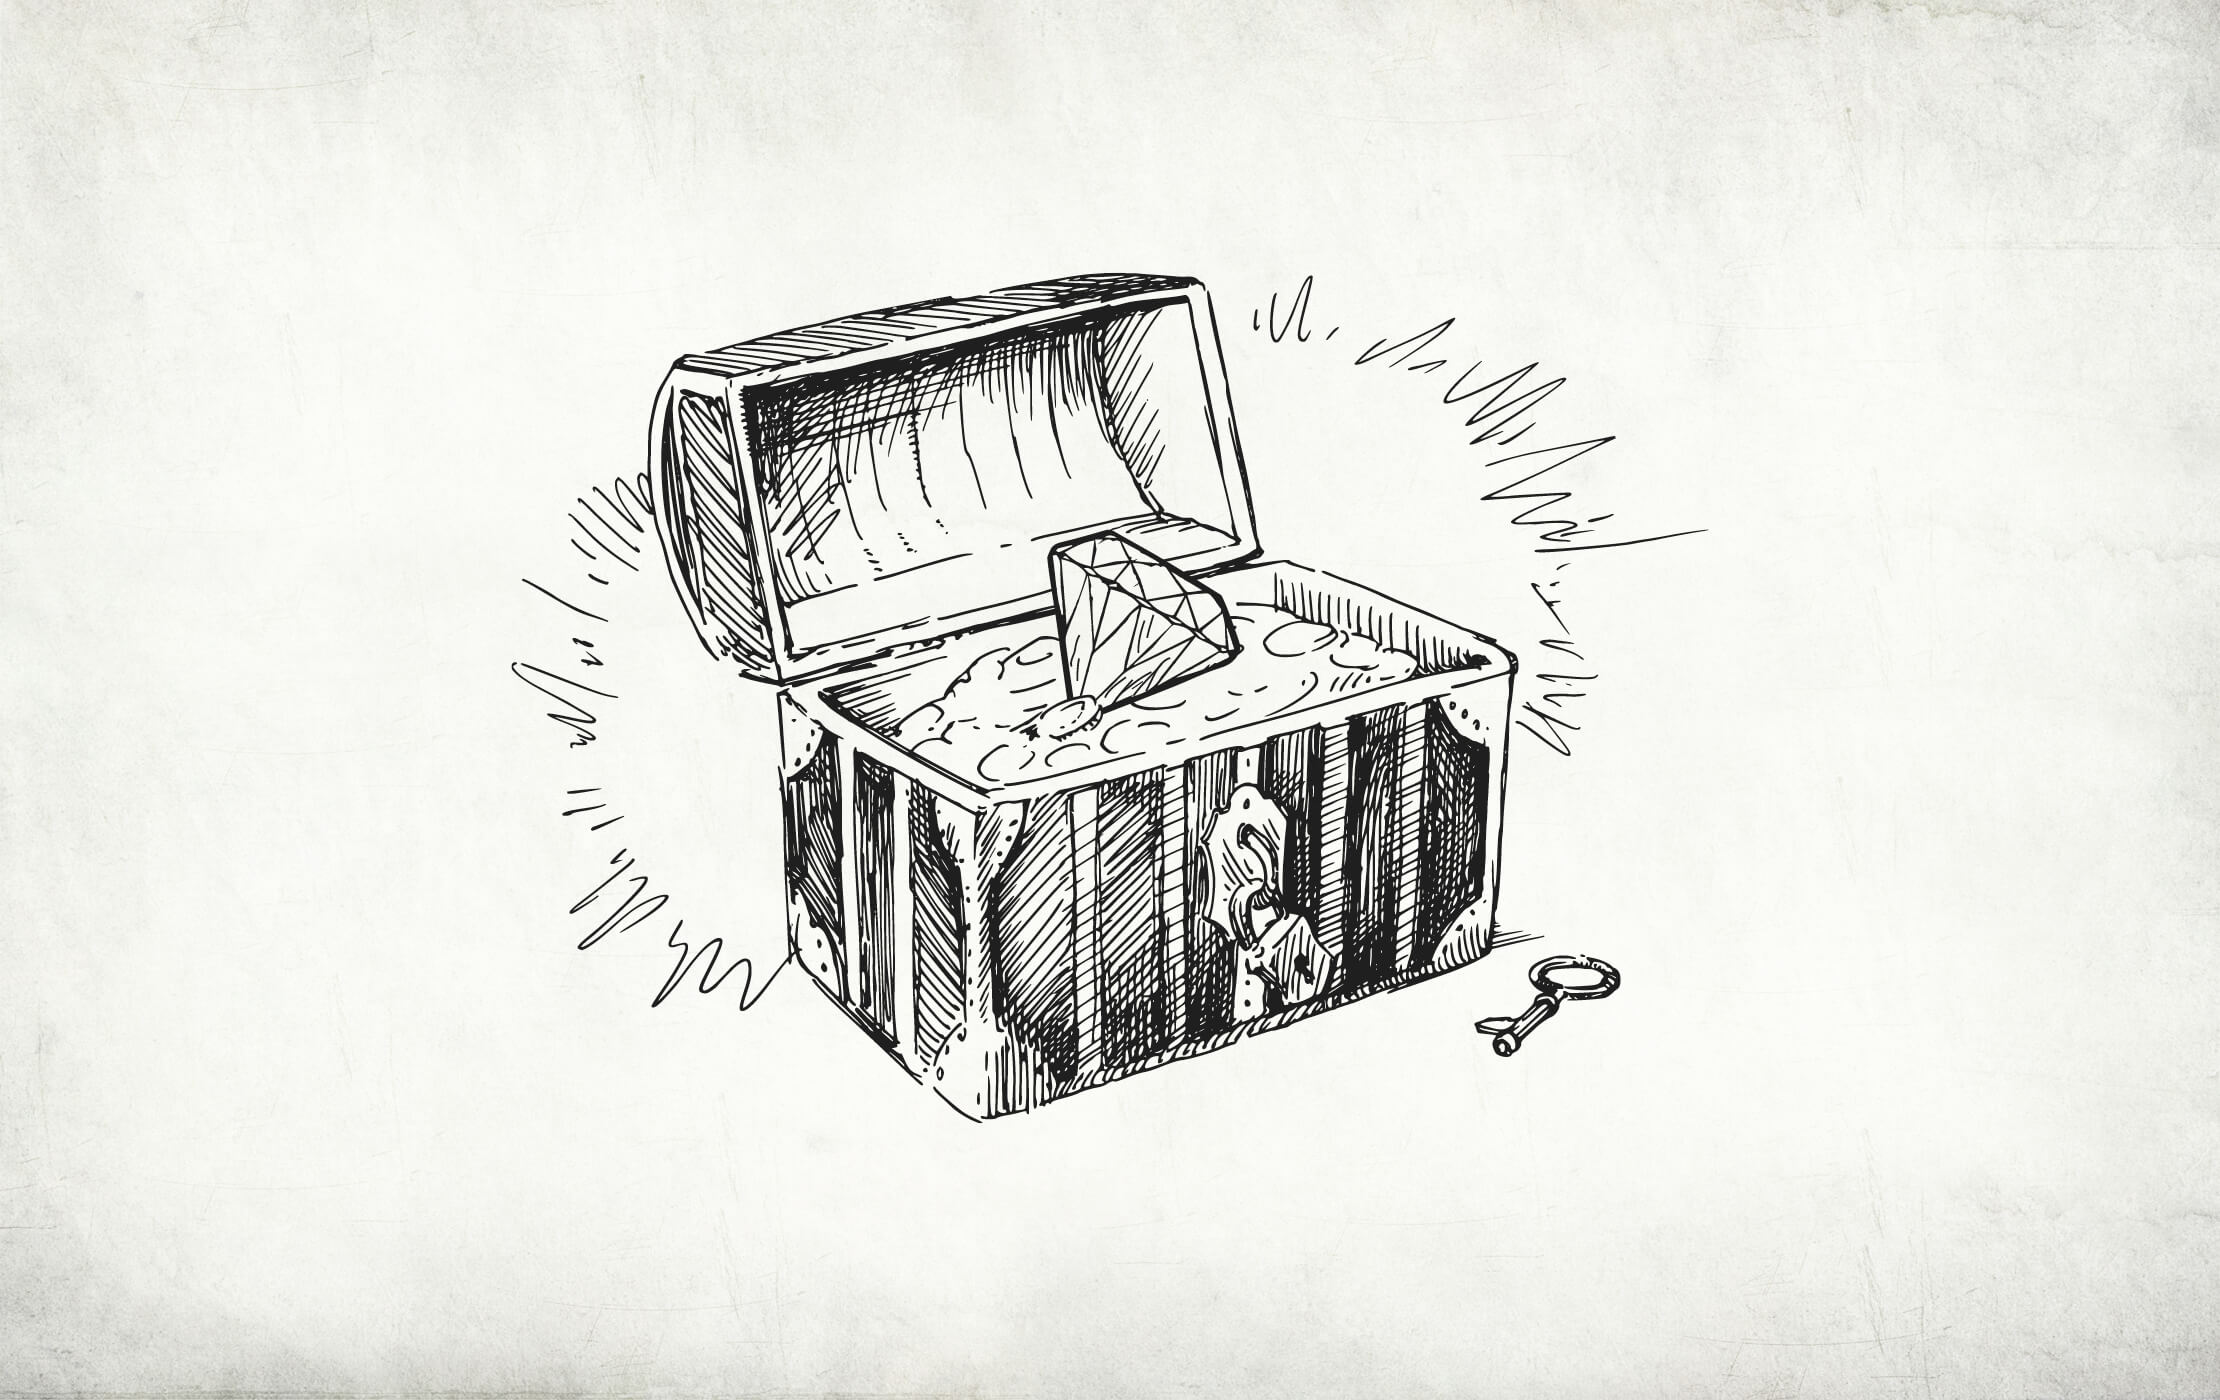 Rough hand-drawn illustration of an old wooden chest, lid open, full of sand and a huge diamond on a vintage, weathered background